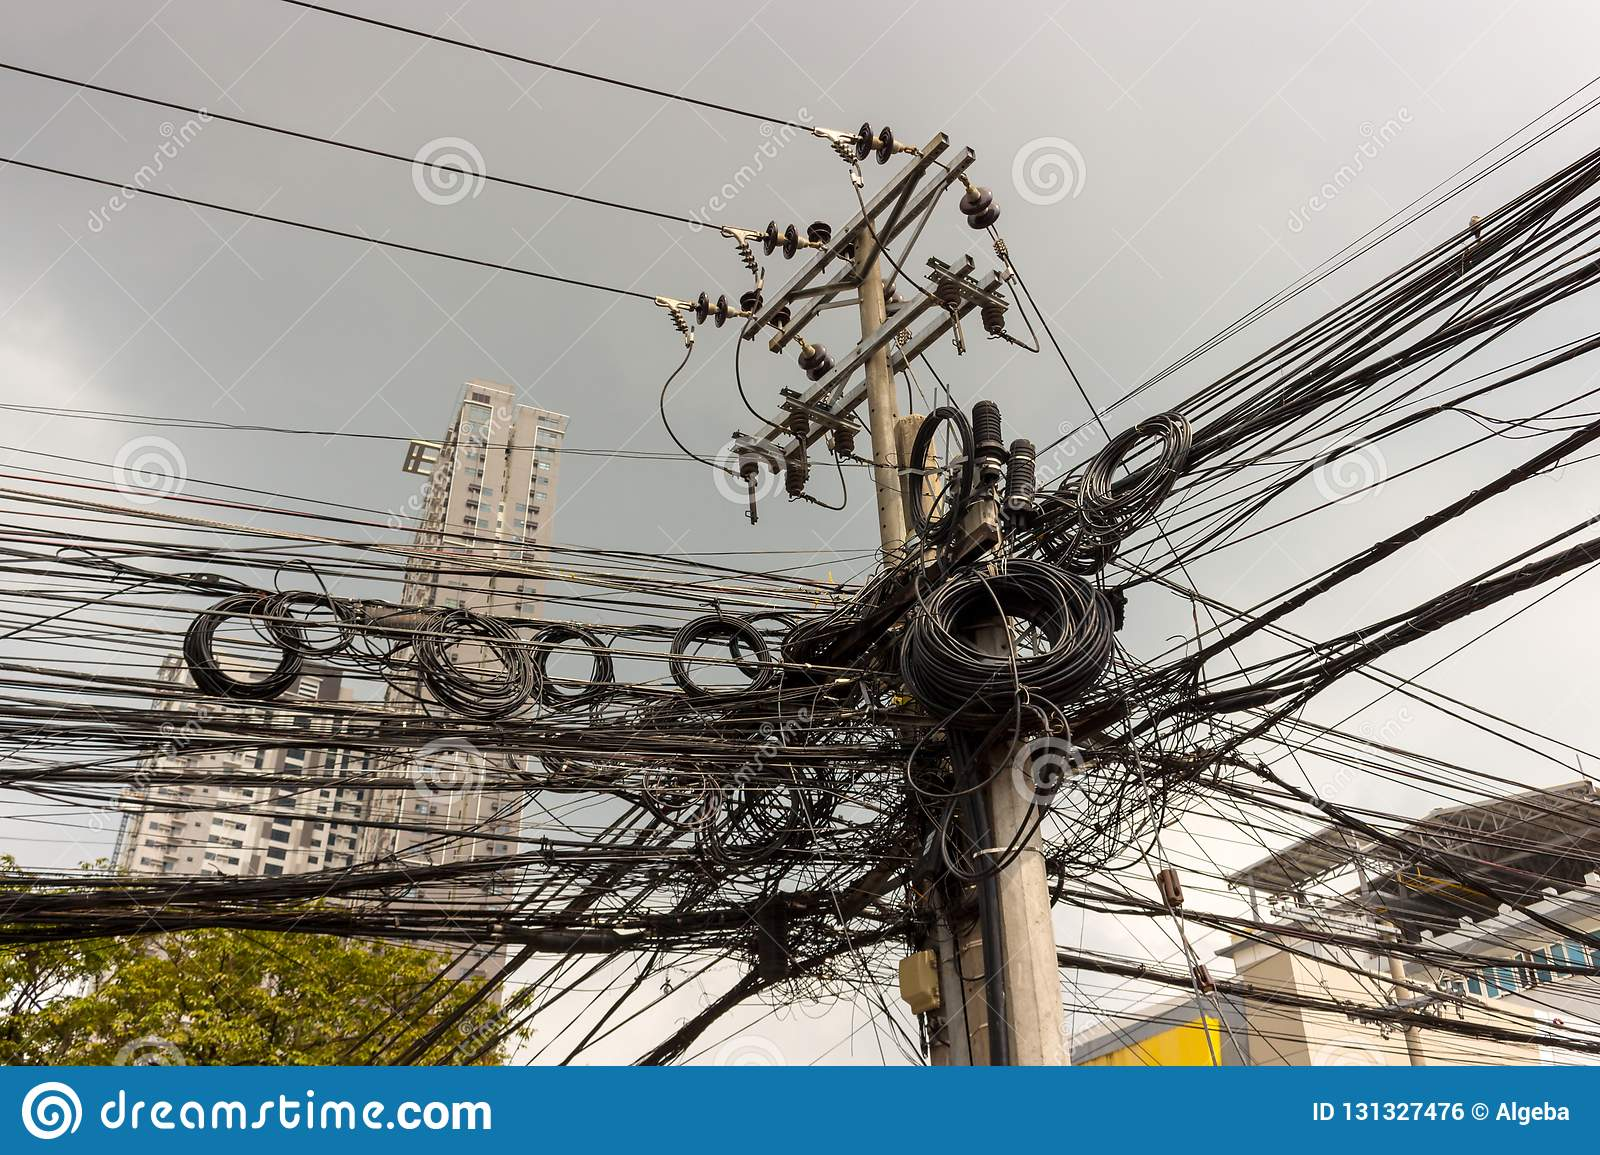 hight resolution of industrial background of messy electrical wires and insulators on the concrete pillar disorderly connection of wires and cables in philippines